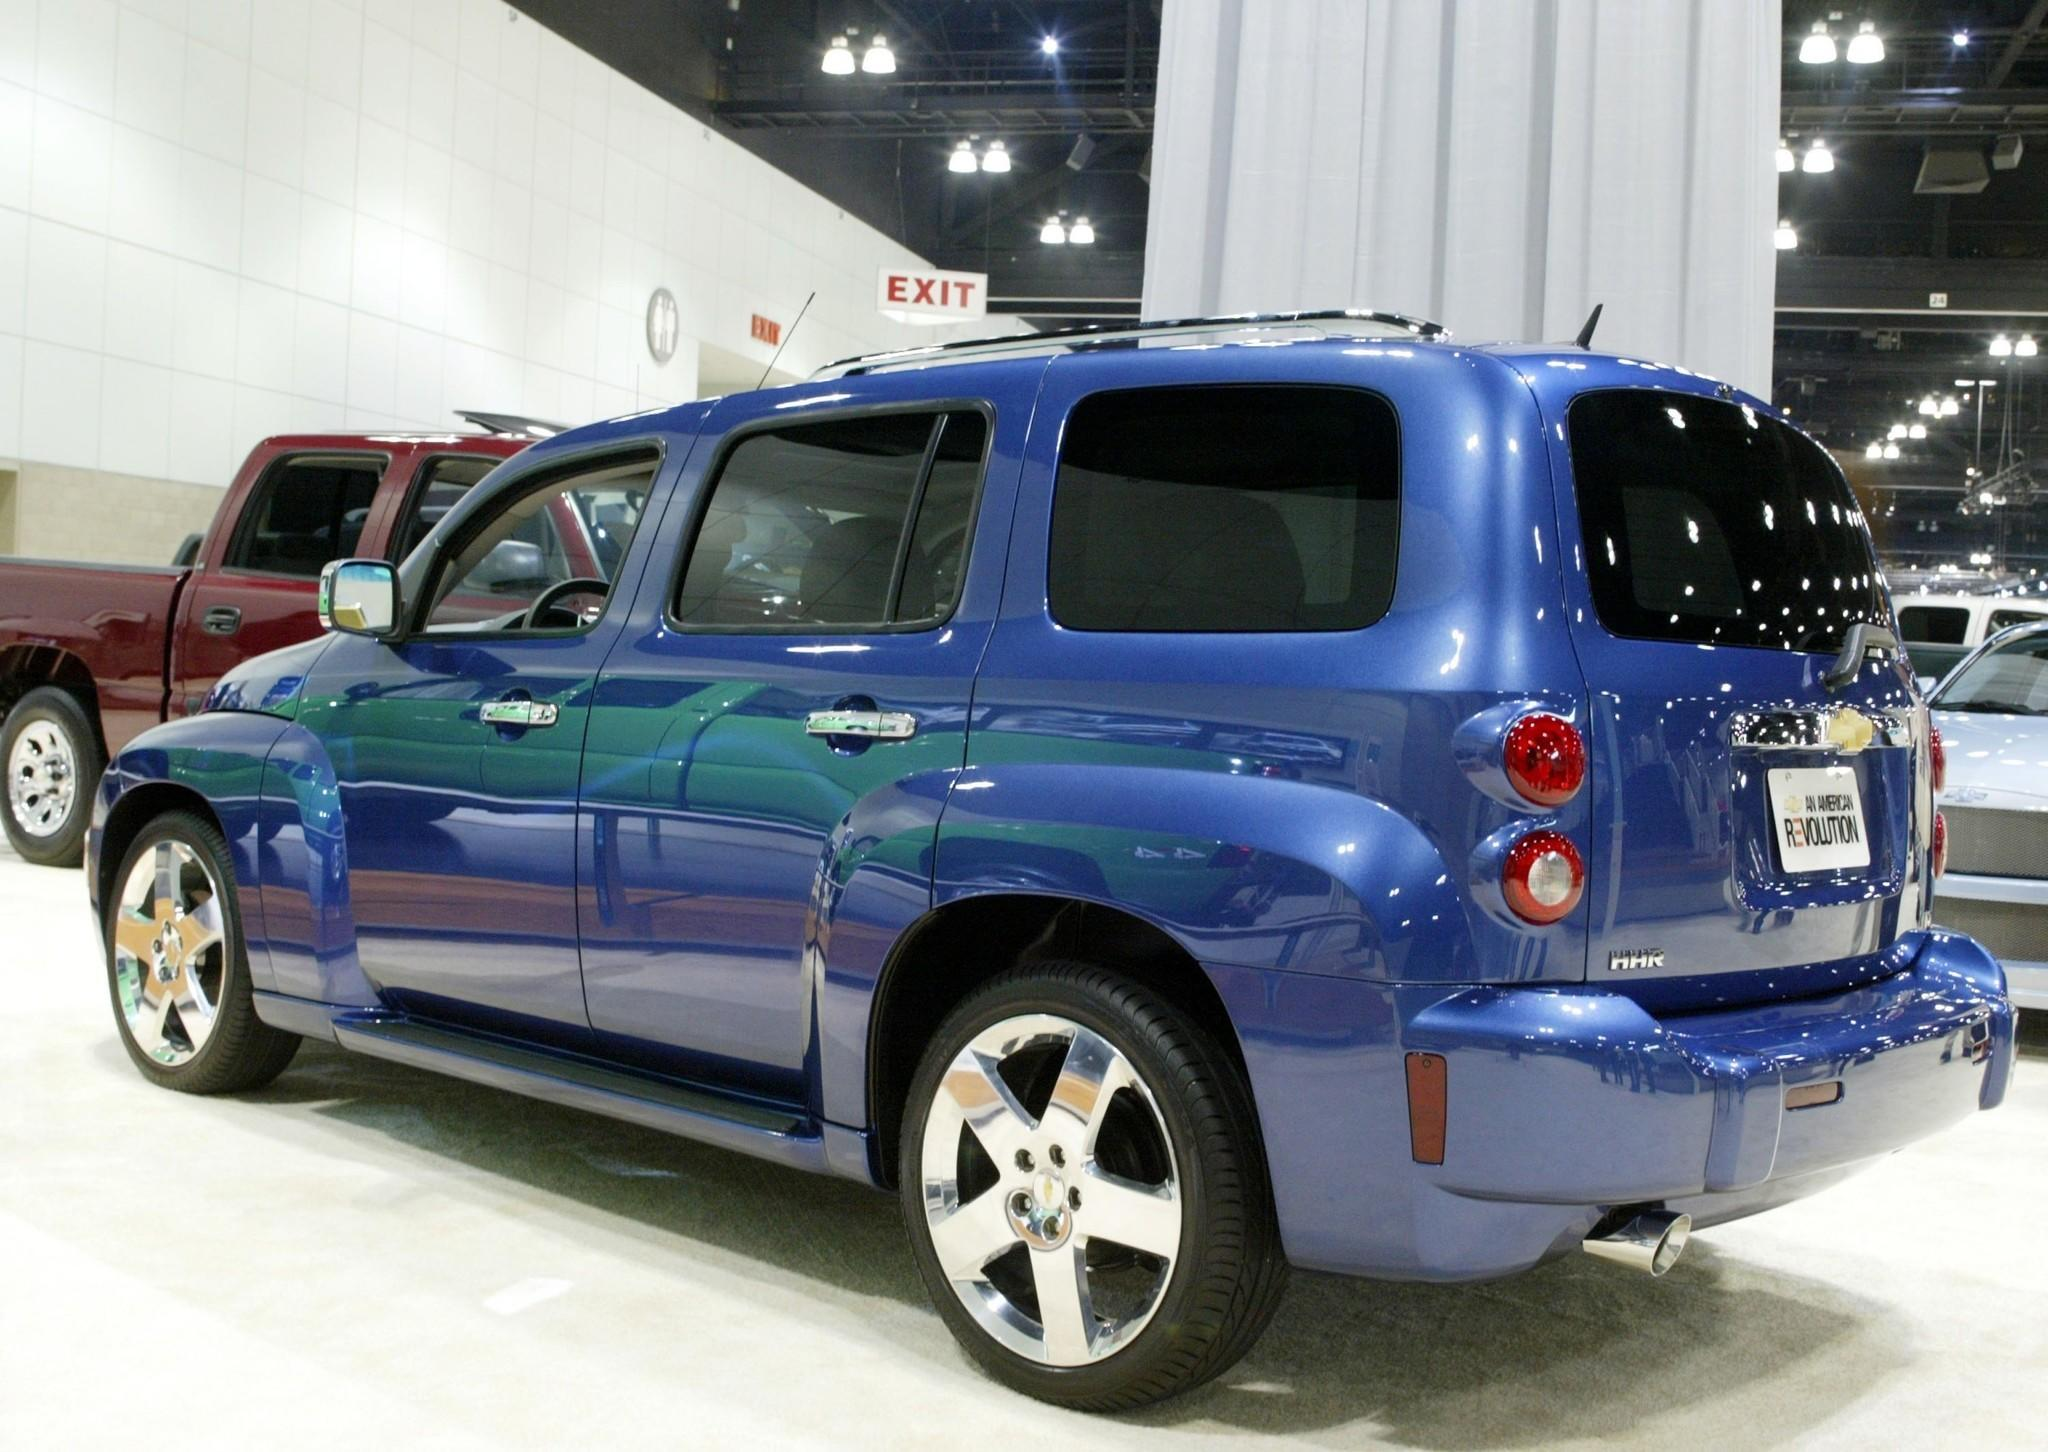 General Motors recalled 1.5 million vehicles, including the 2006 Chevrolet HHR, to fix a power steering problem.